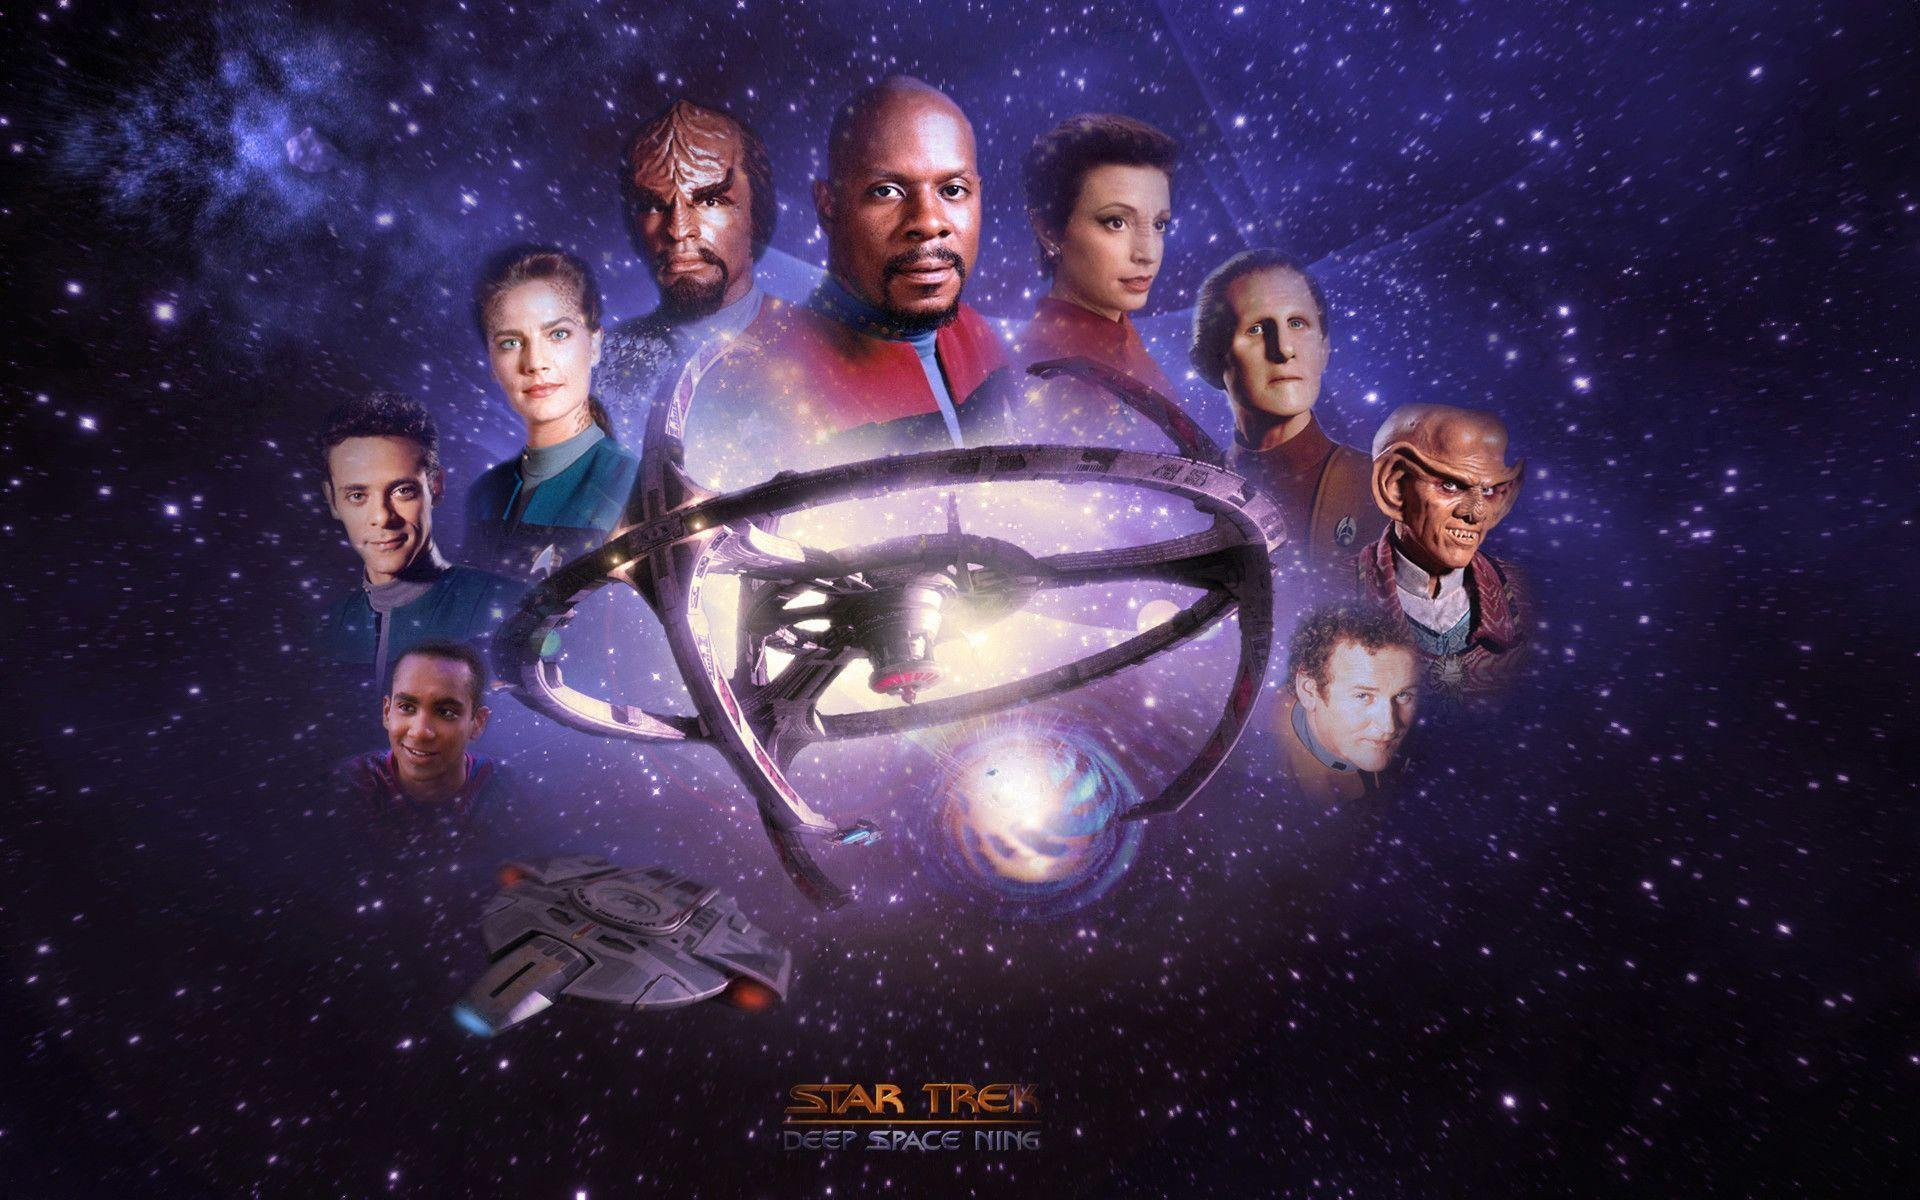 TV Show Star Trek: Deep Space Nine Wallpapers 1920x1200 px Free